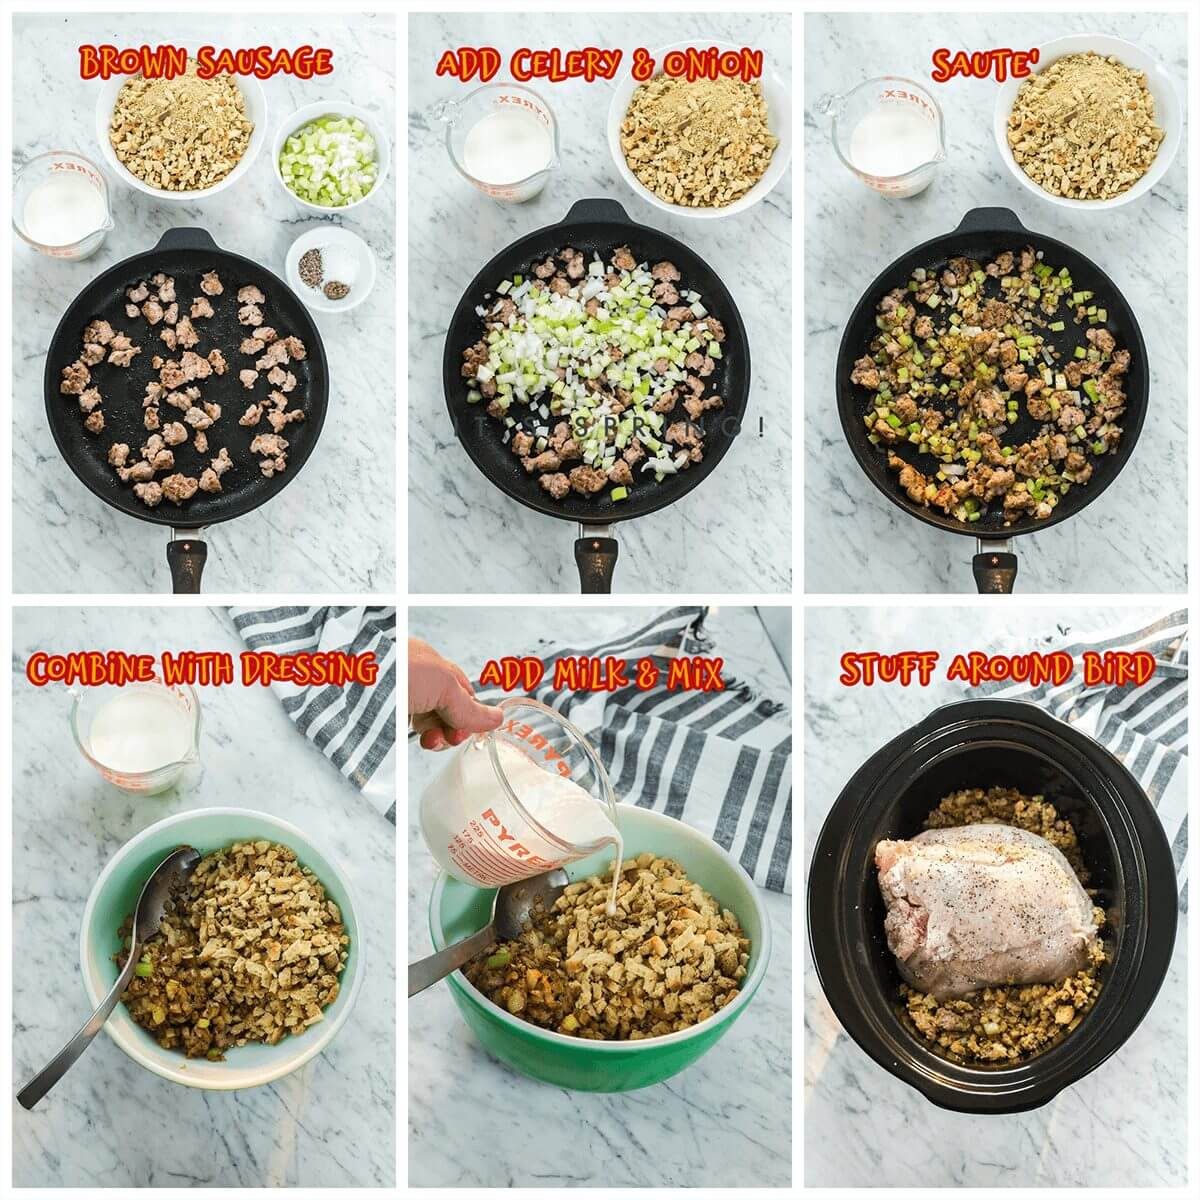 Step by step photos showing how to make this recipe.